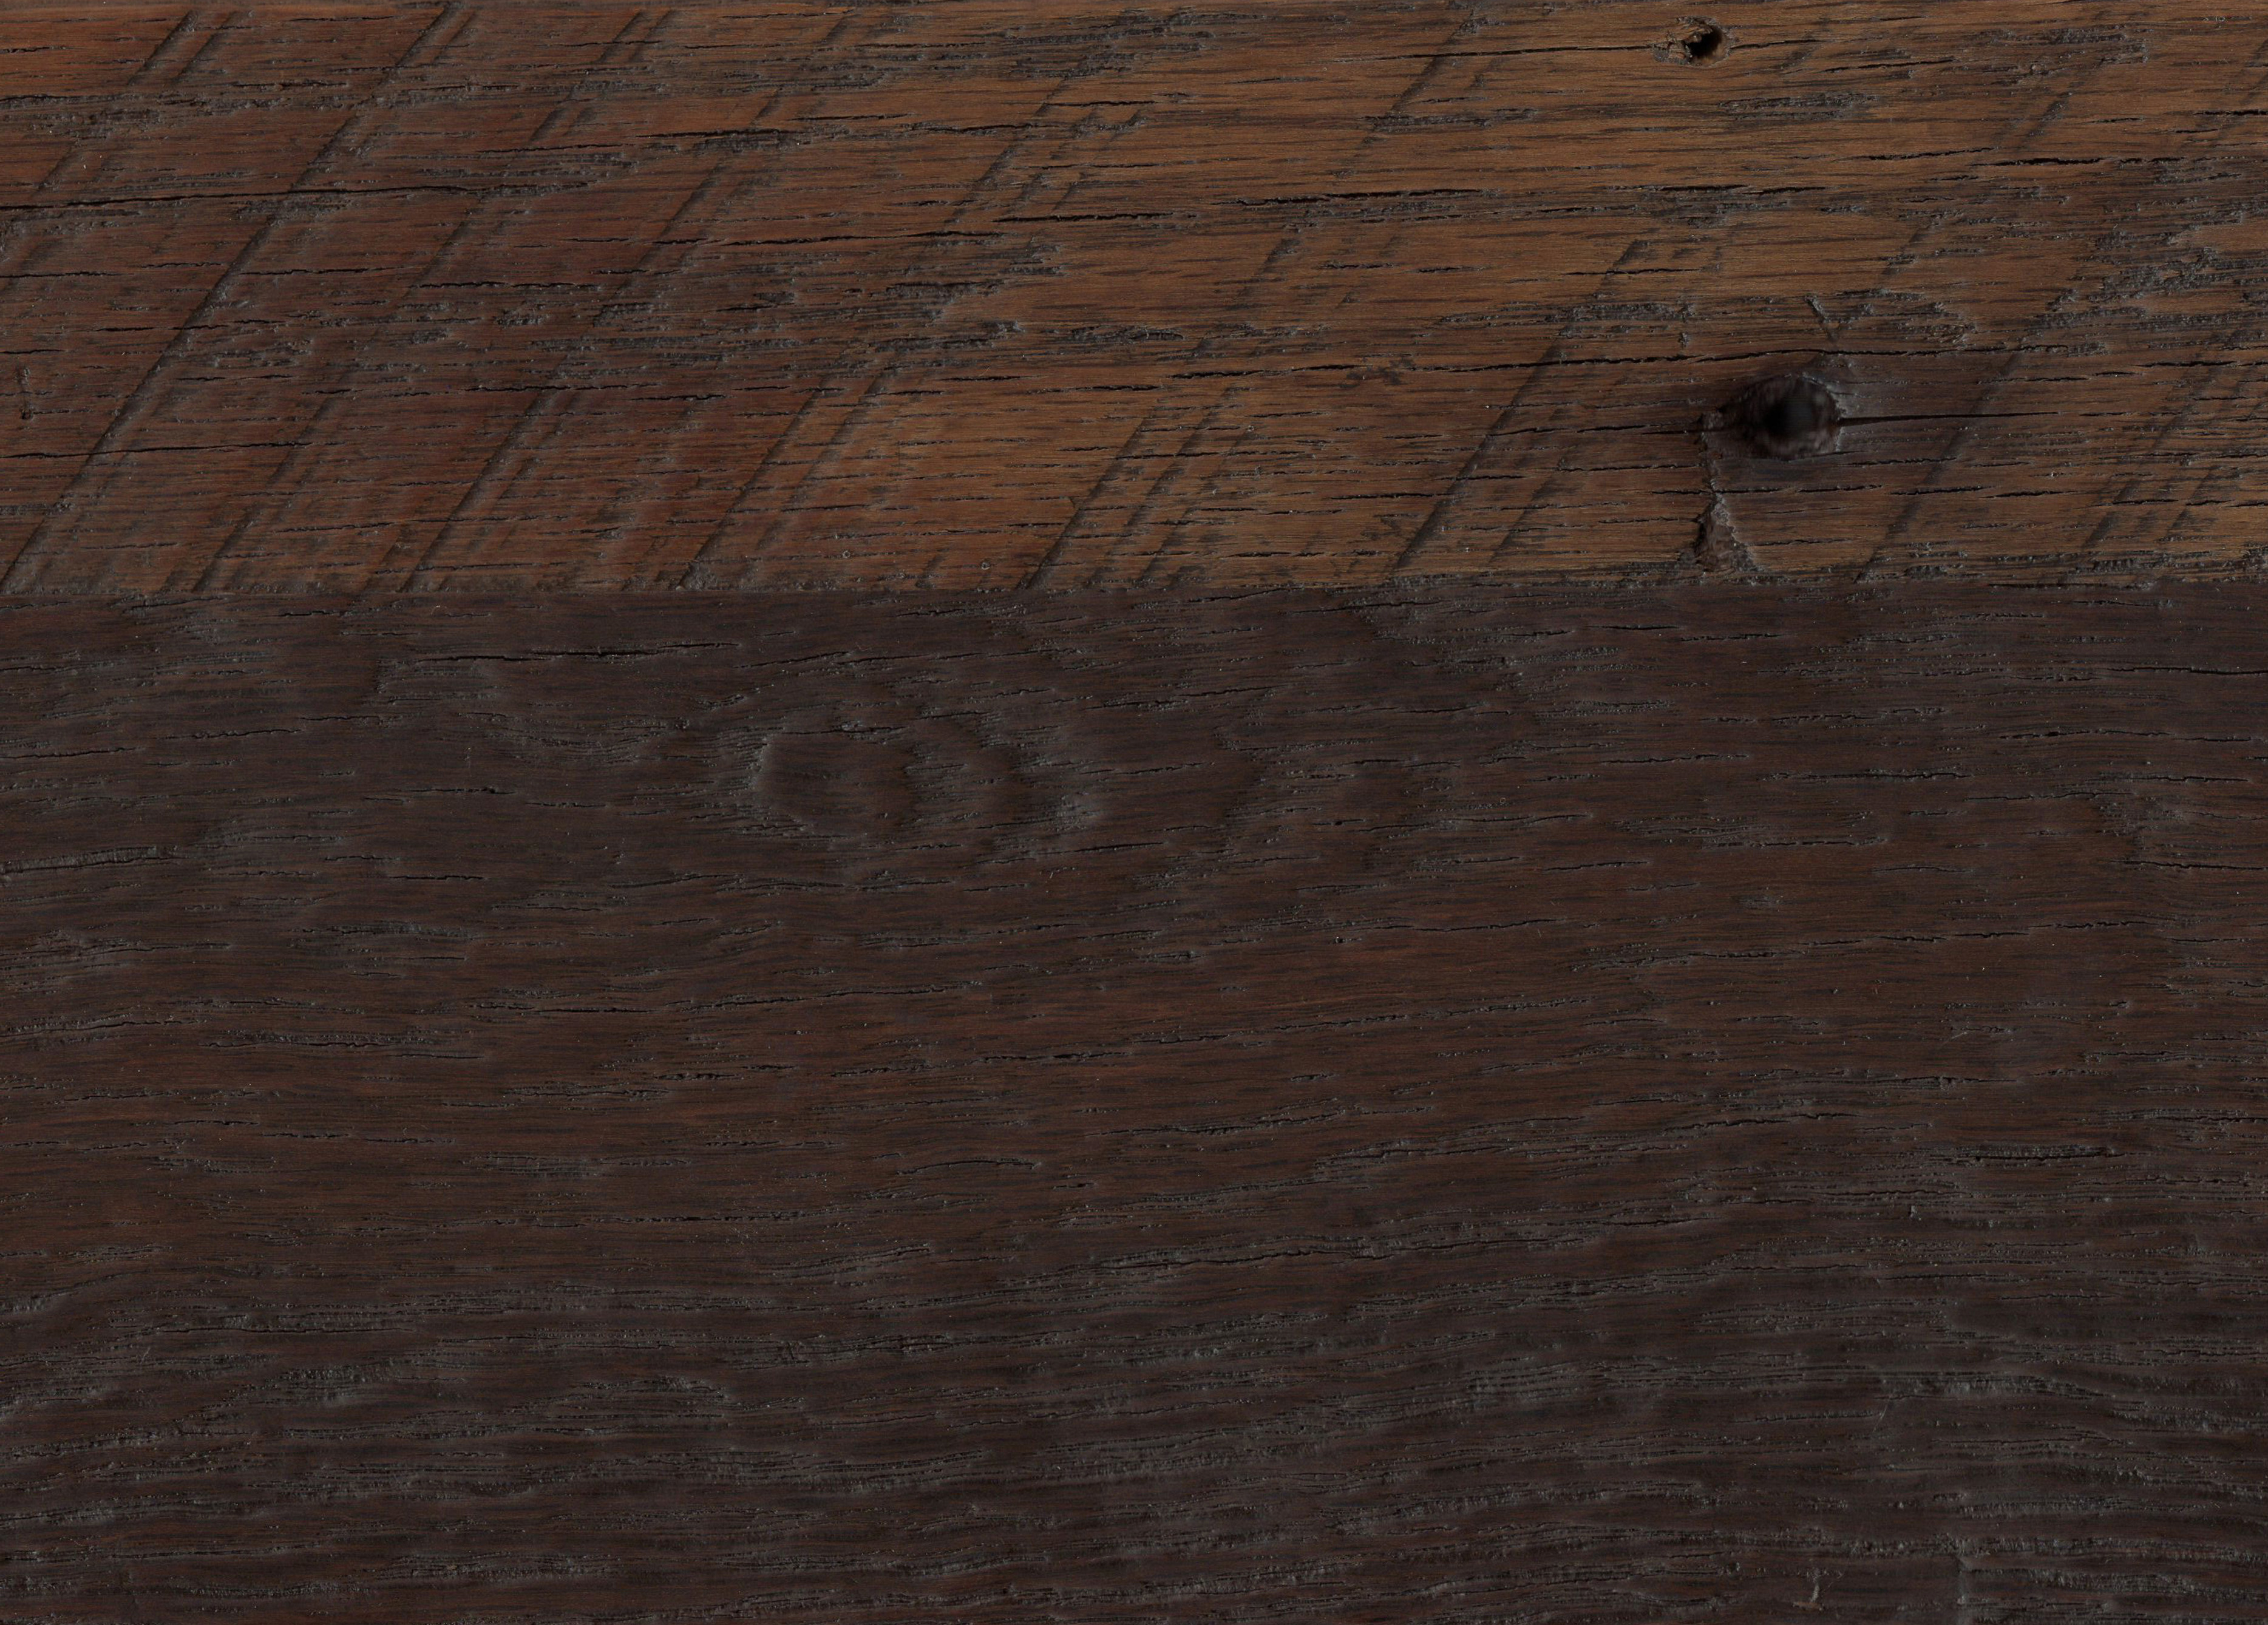 Stains on Rough Sawn Barnwood: Light Brown